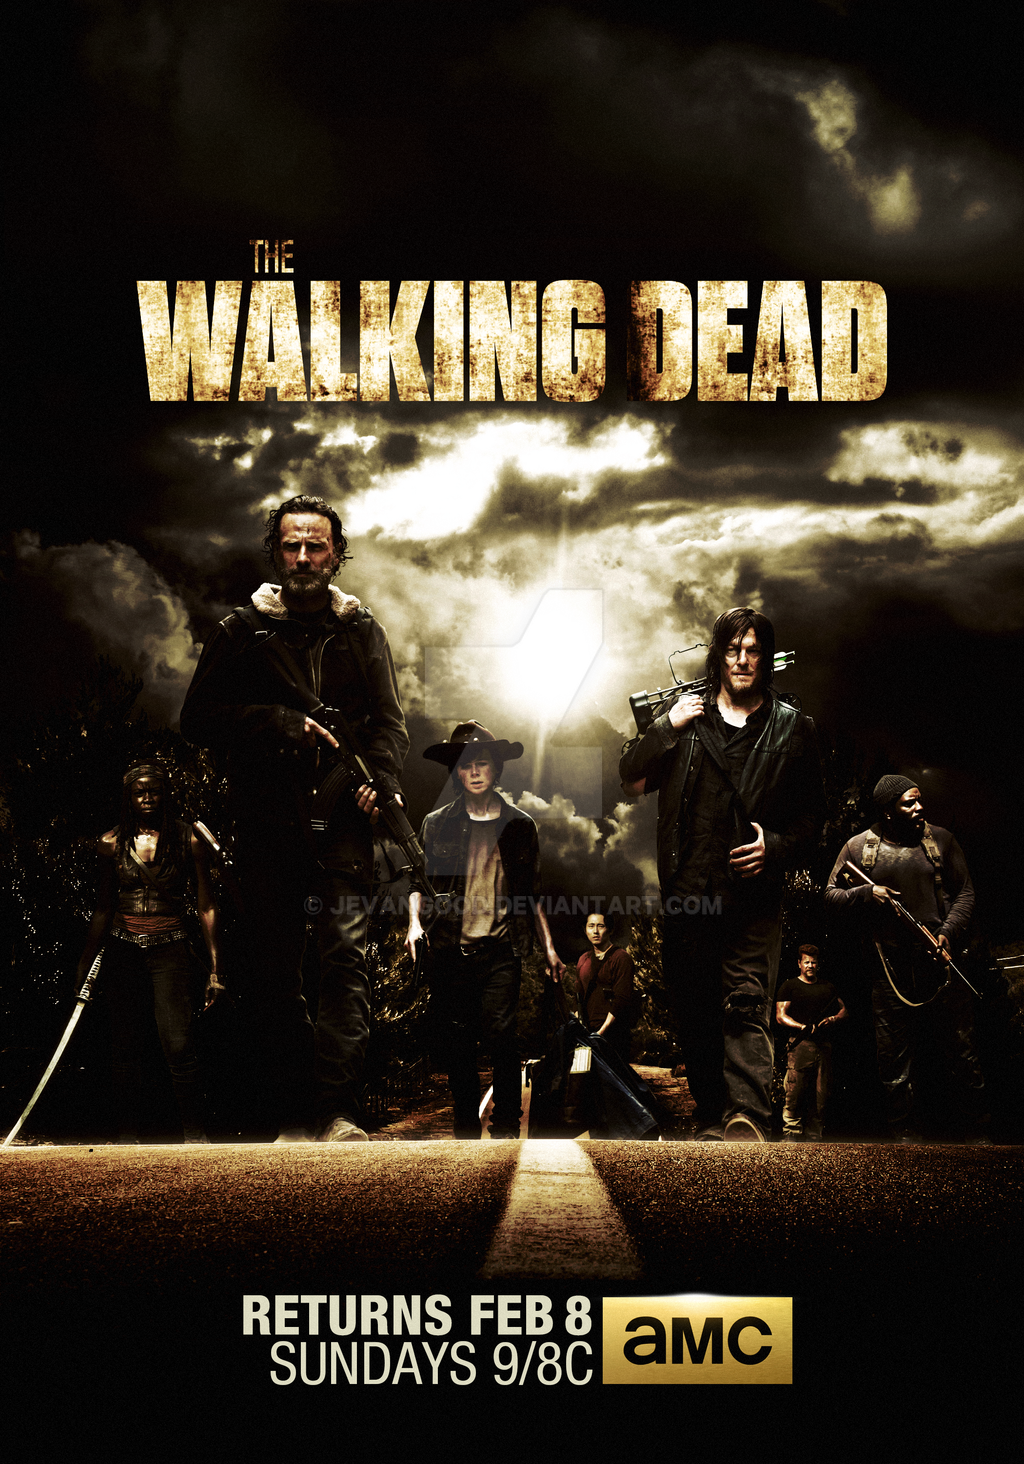 The walking dead season 6 iphone wallpapers impremedia get free high quality hd wallpapers walking dead season 4 iphone wallpaper voltagebd Choice Image